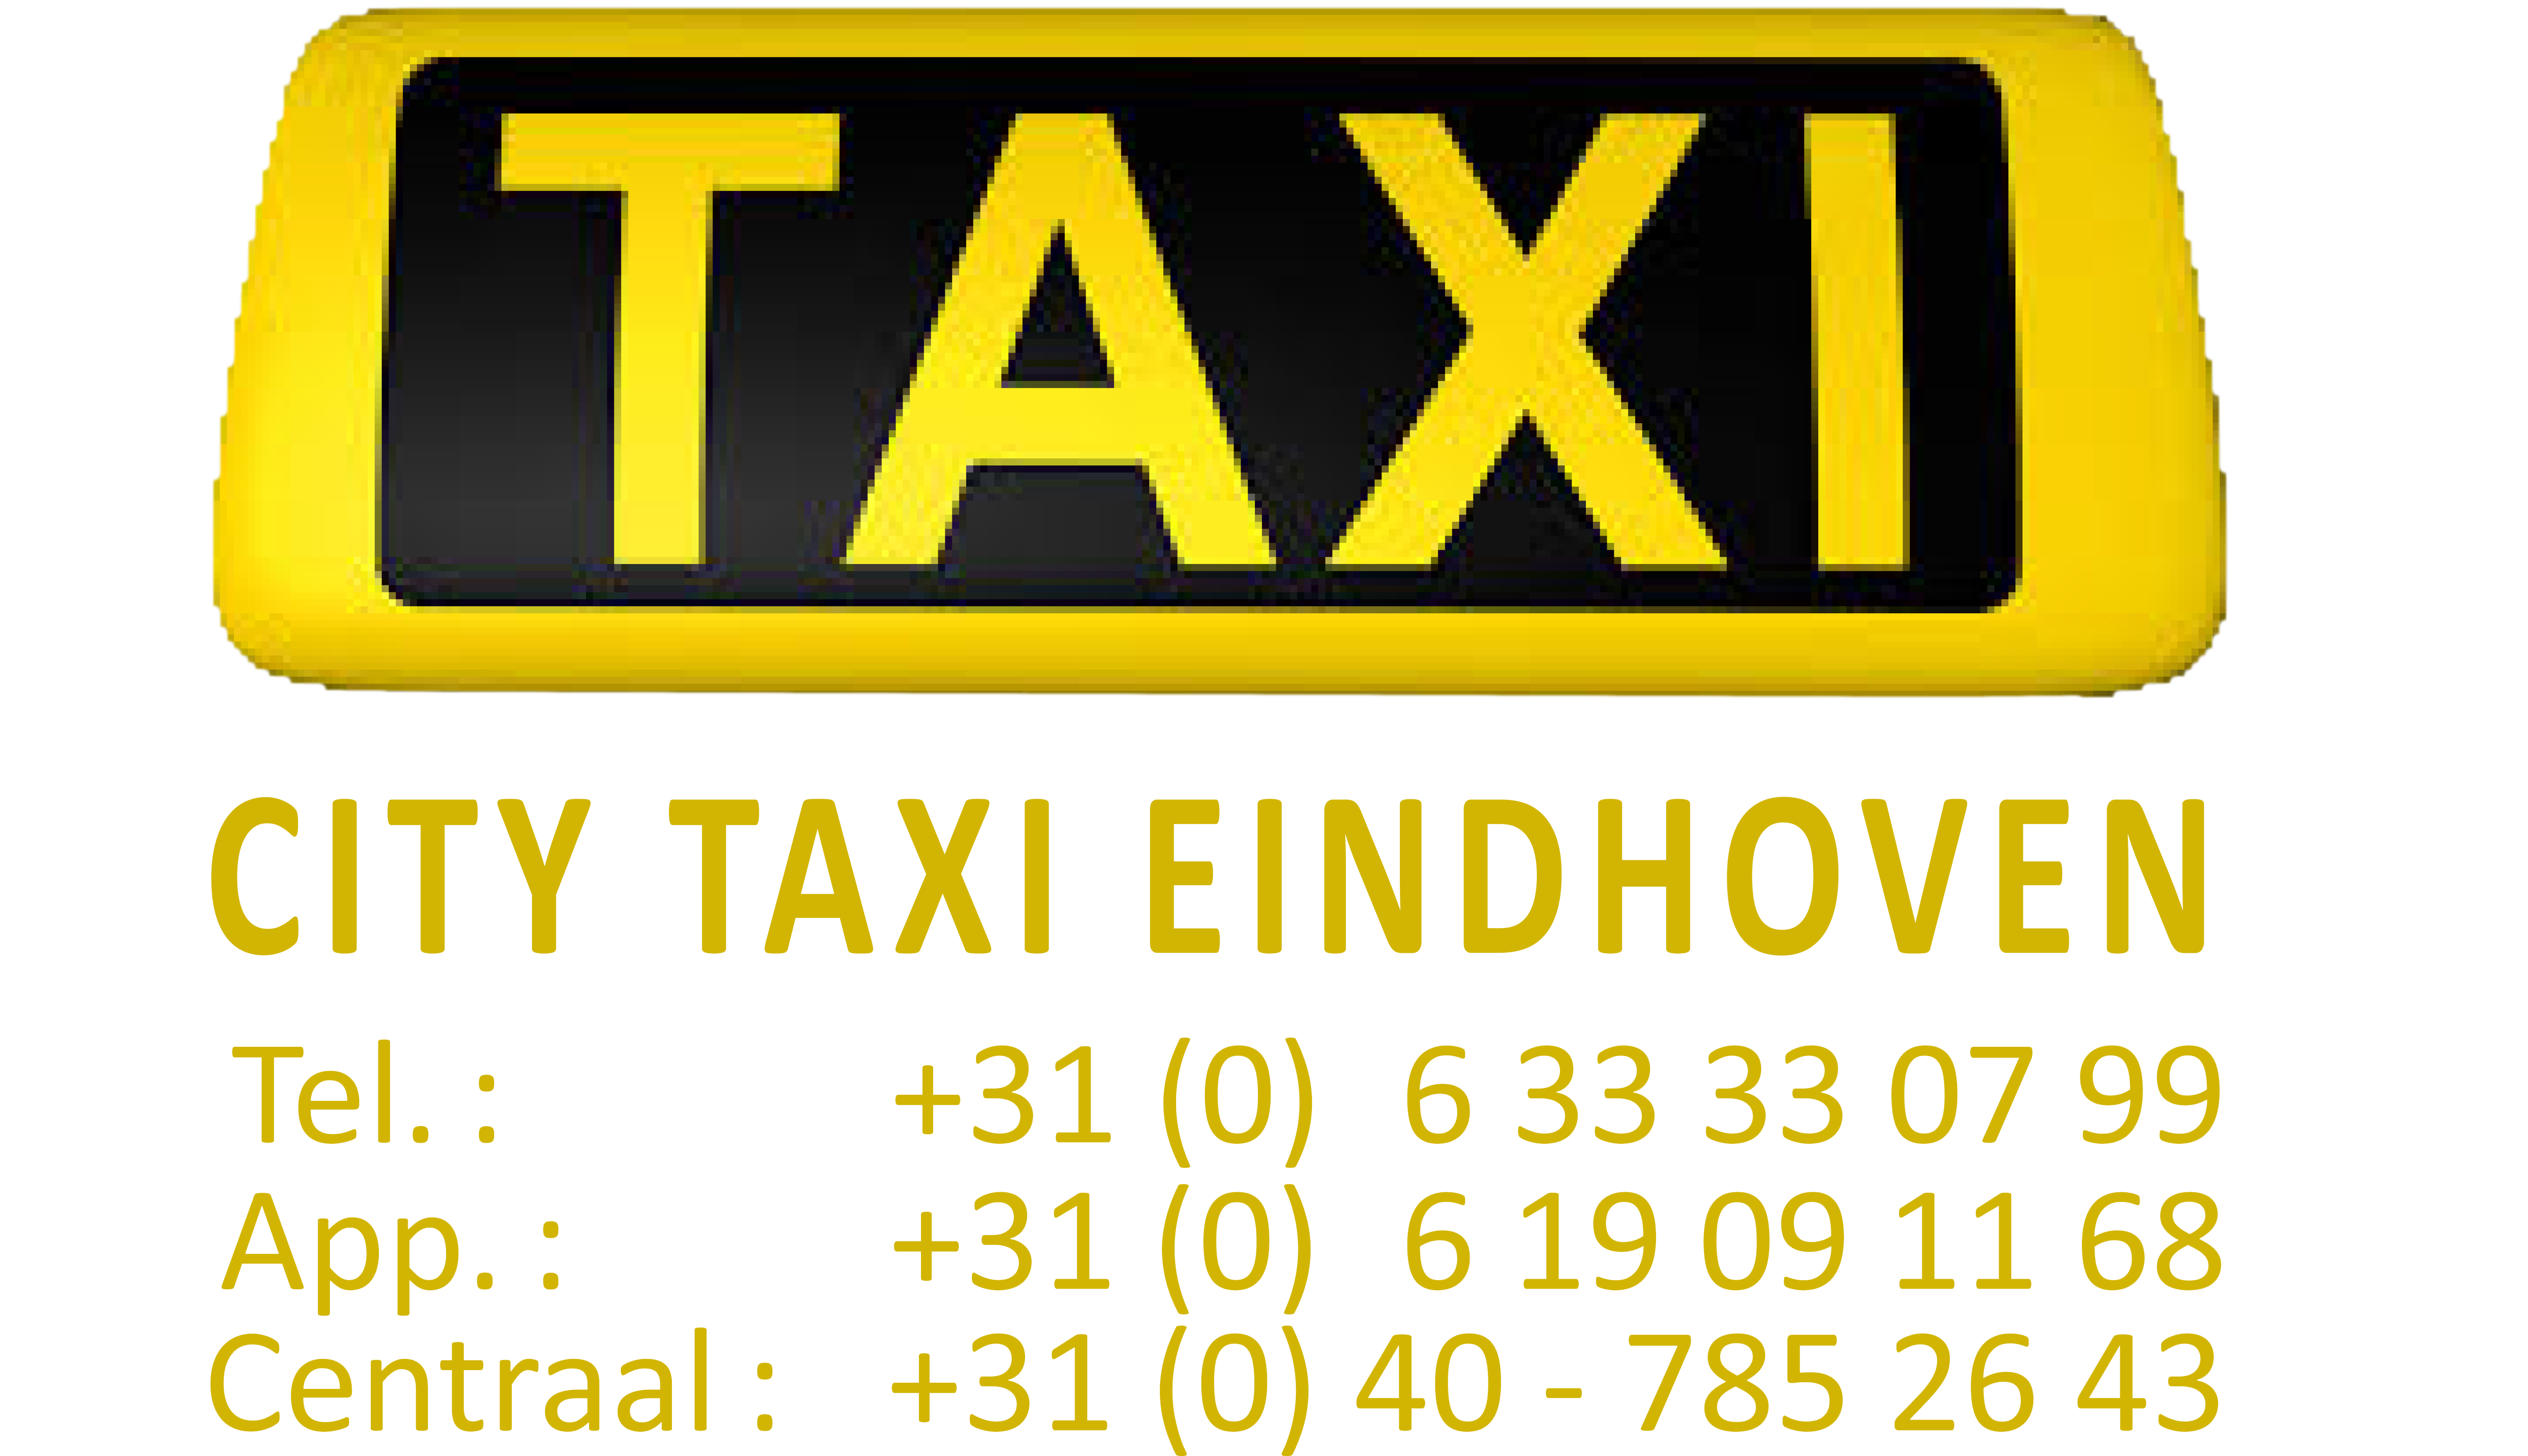 City Taxi Eindhoven